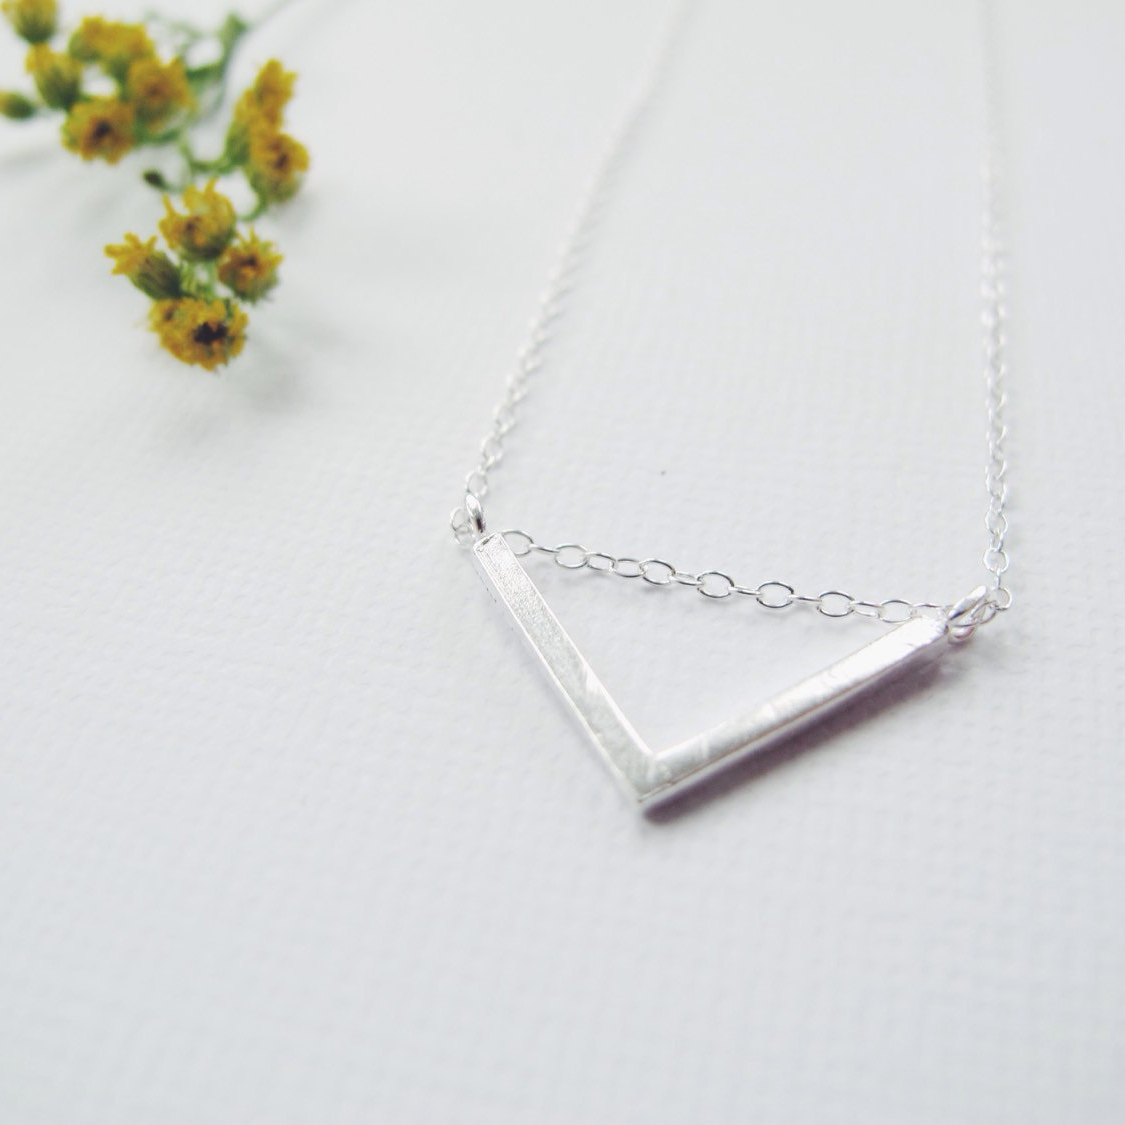 Wild and Fawn  - Simple but striking jewellery is where it is at. I have a beautiful ring from Wild and Fawn but also have my eye on the necklace above. Great for your stylish friends.